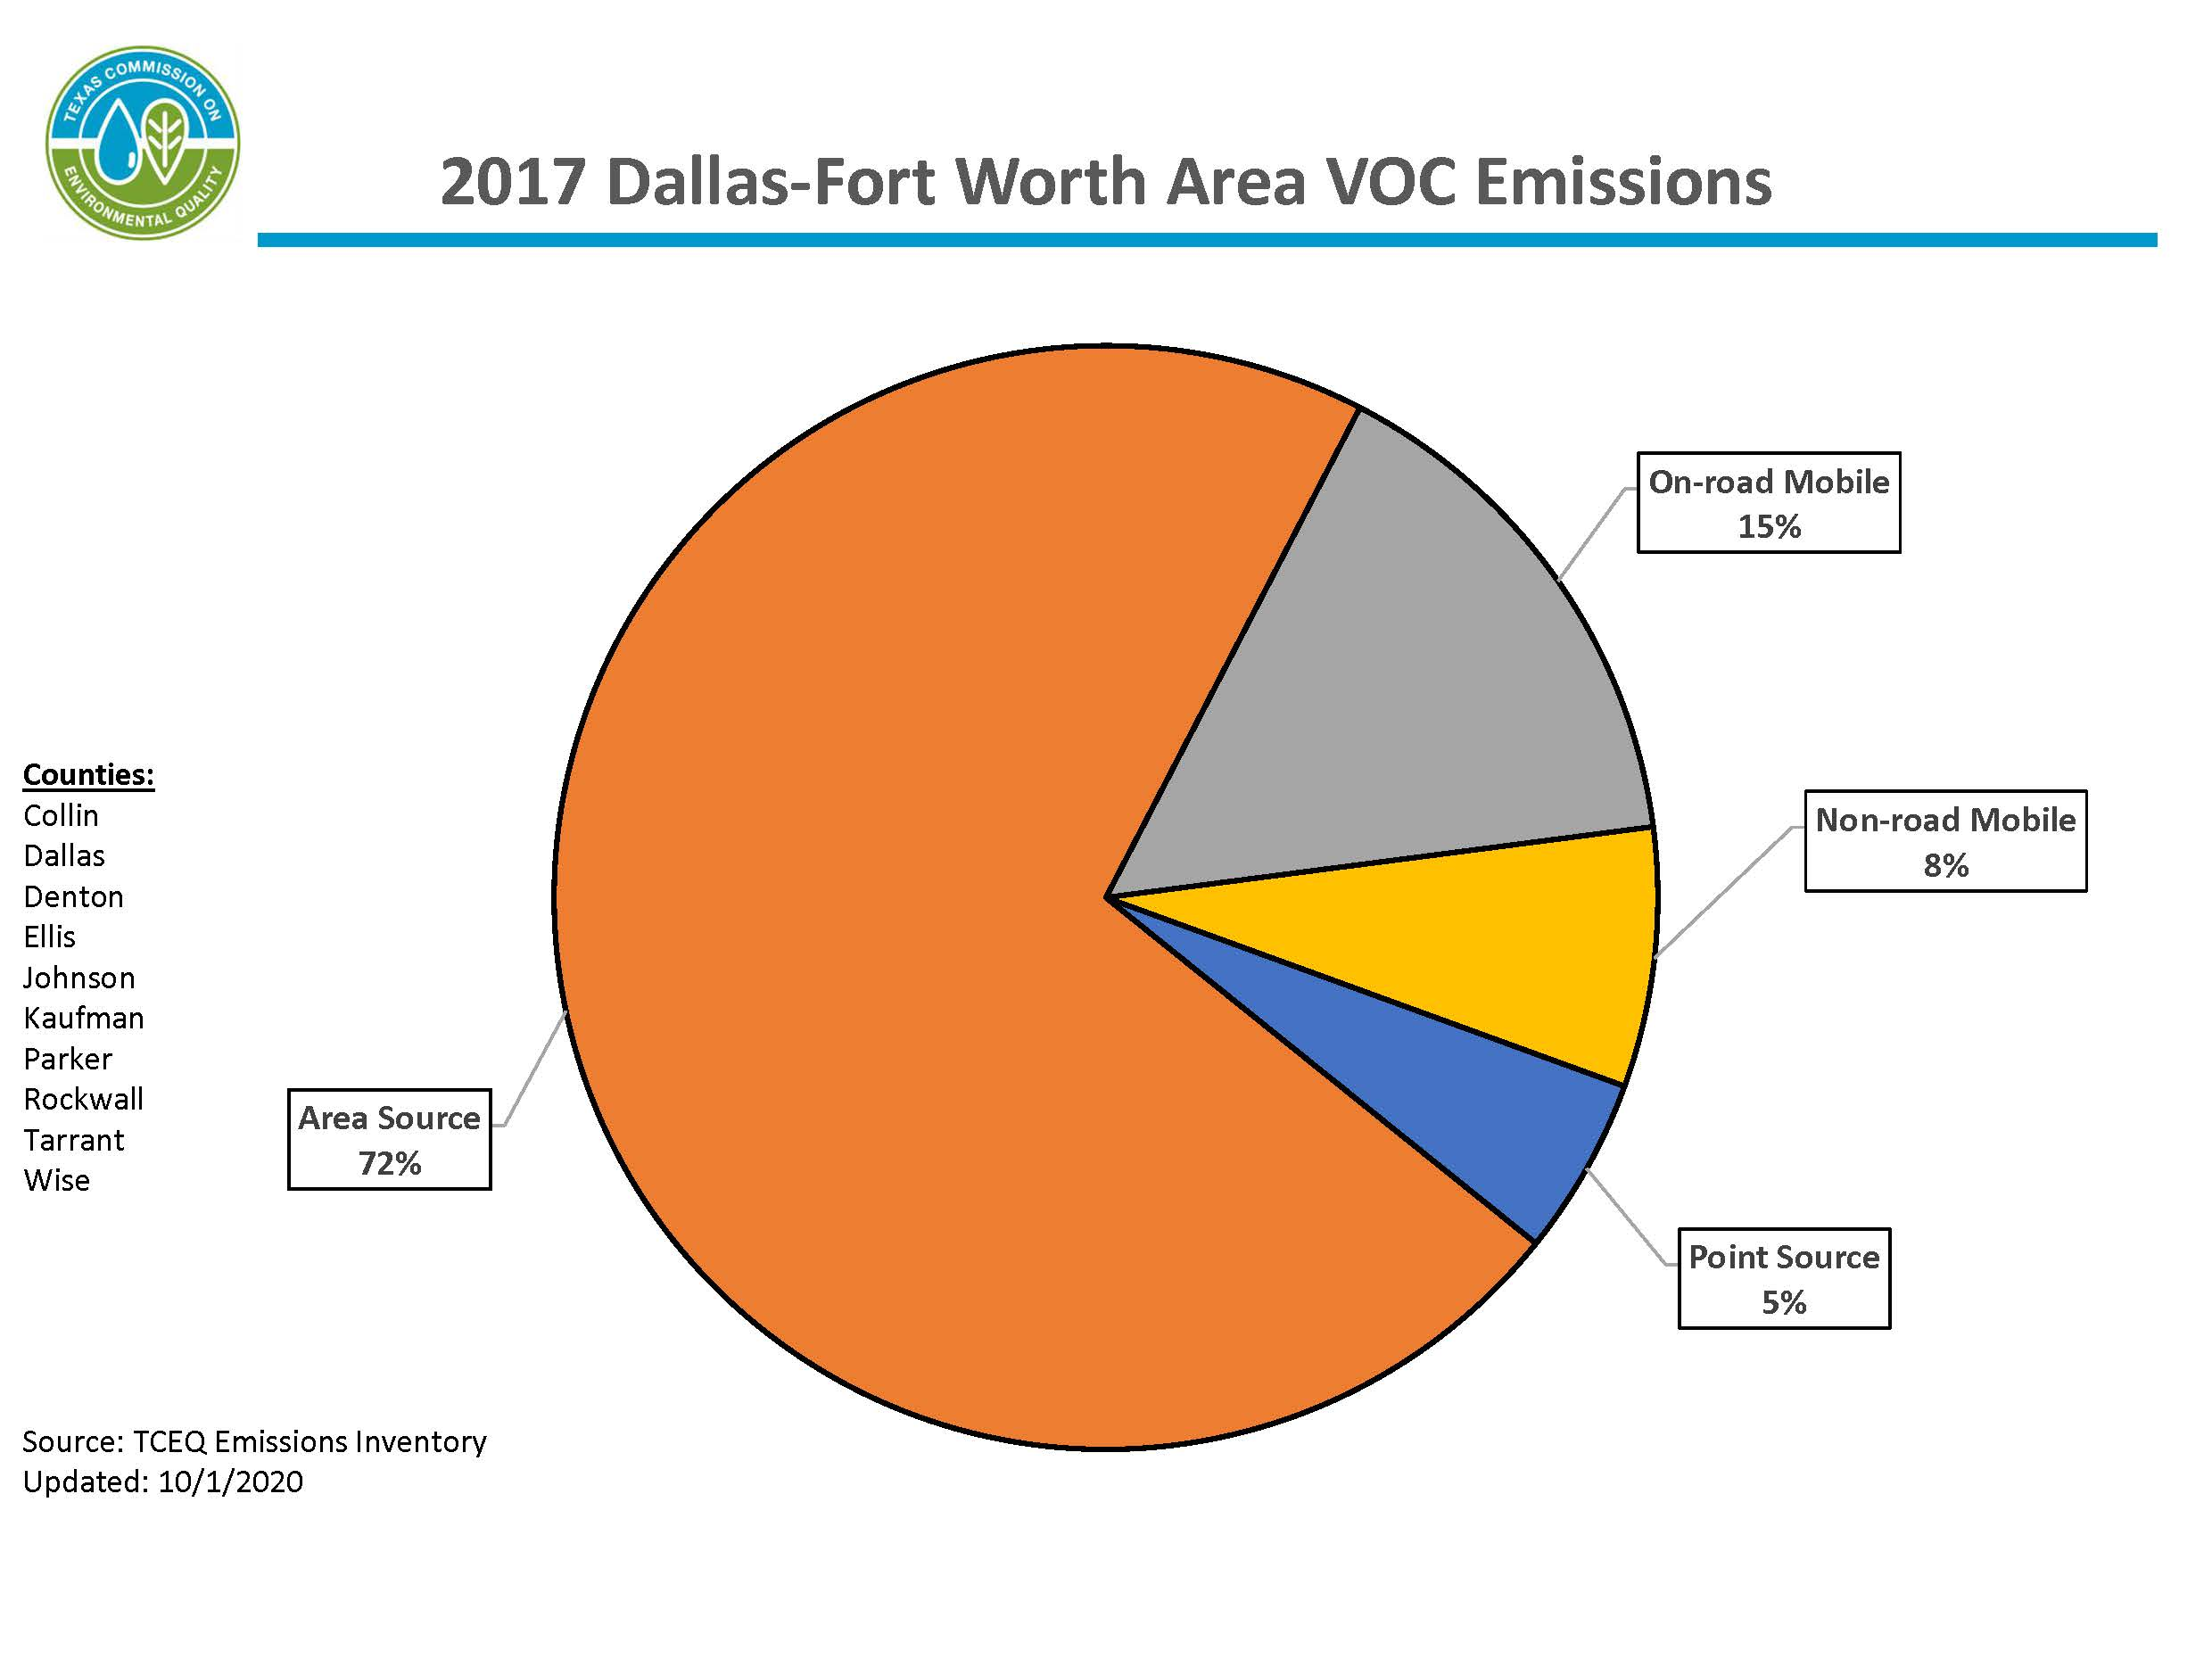 This chart represents calendar year 2017 volatile organic compound emissions for the 10-county Dallas-Fort Worth area. The DFW area includes Collin, Dallas, Denton, Ellis, Johnson, Kaufman, Parker, Rockwall, Tarrant, and Wise counties. 71 percent of emissions are from area sources, 24 percent of emissions are from mobile sources, and 5 percent of emissions are from point sources.